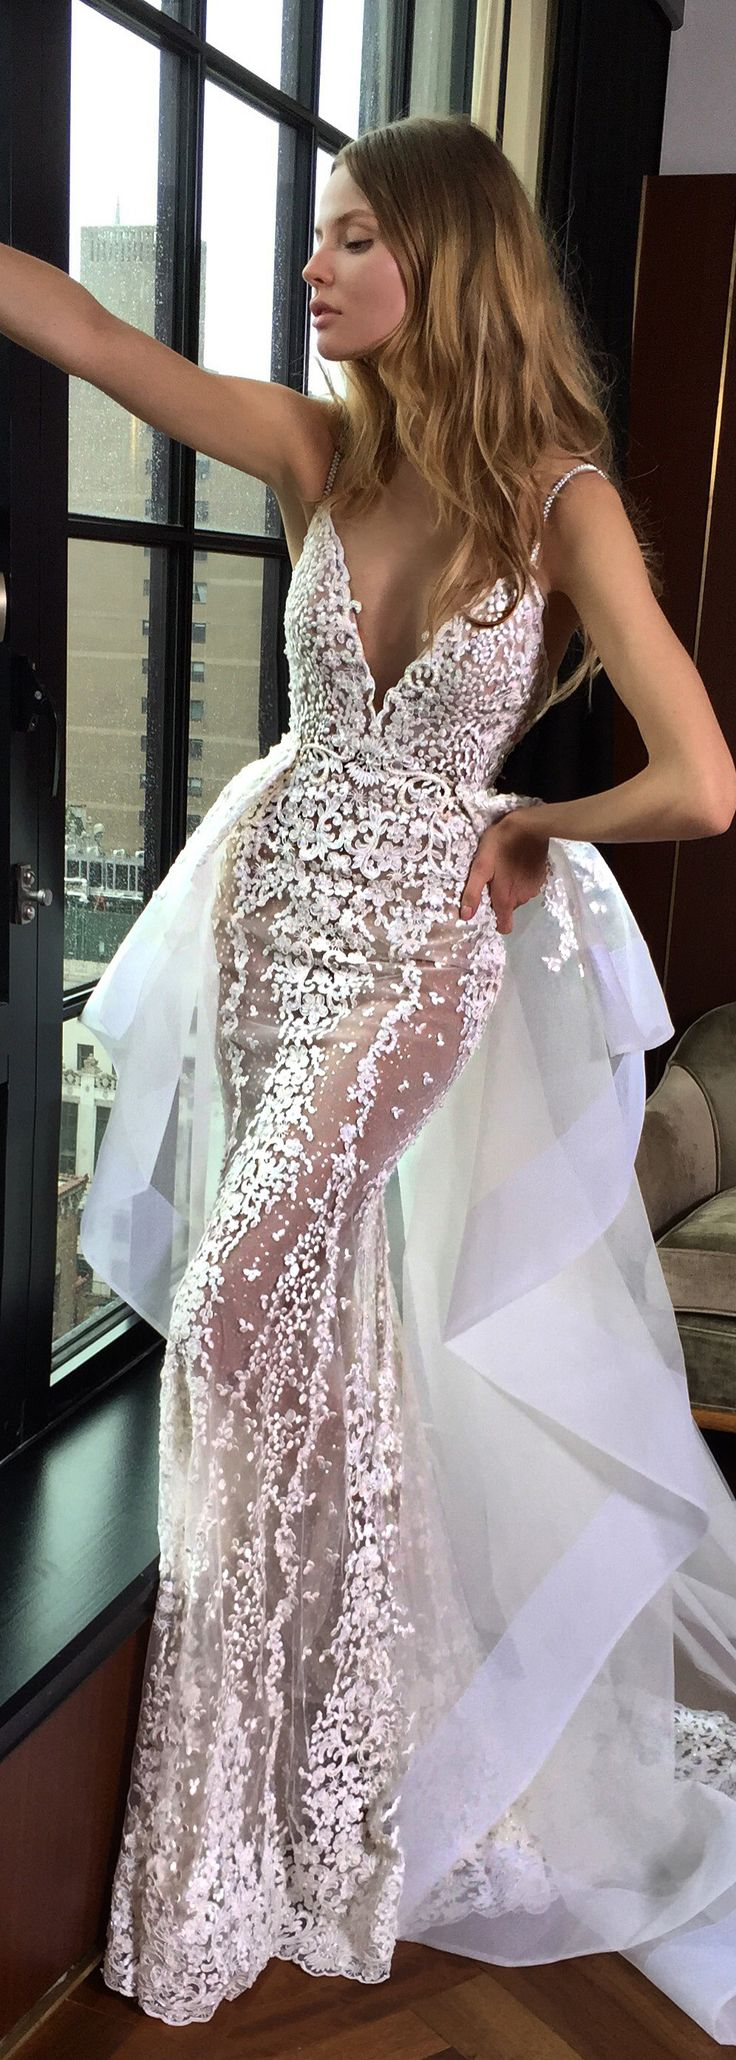 We love how the playful train on this @bertabridal gown flairs out from the waist, so chic!